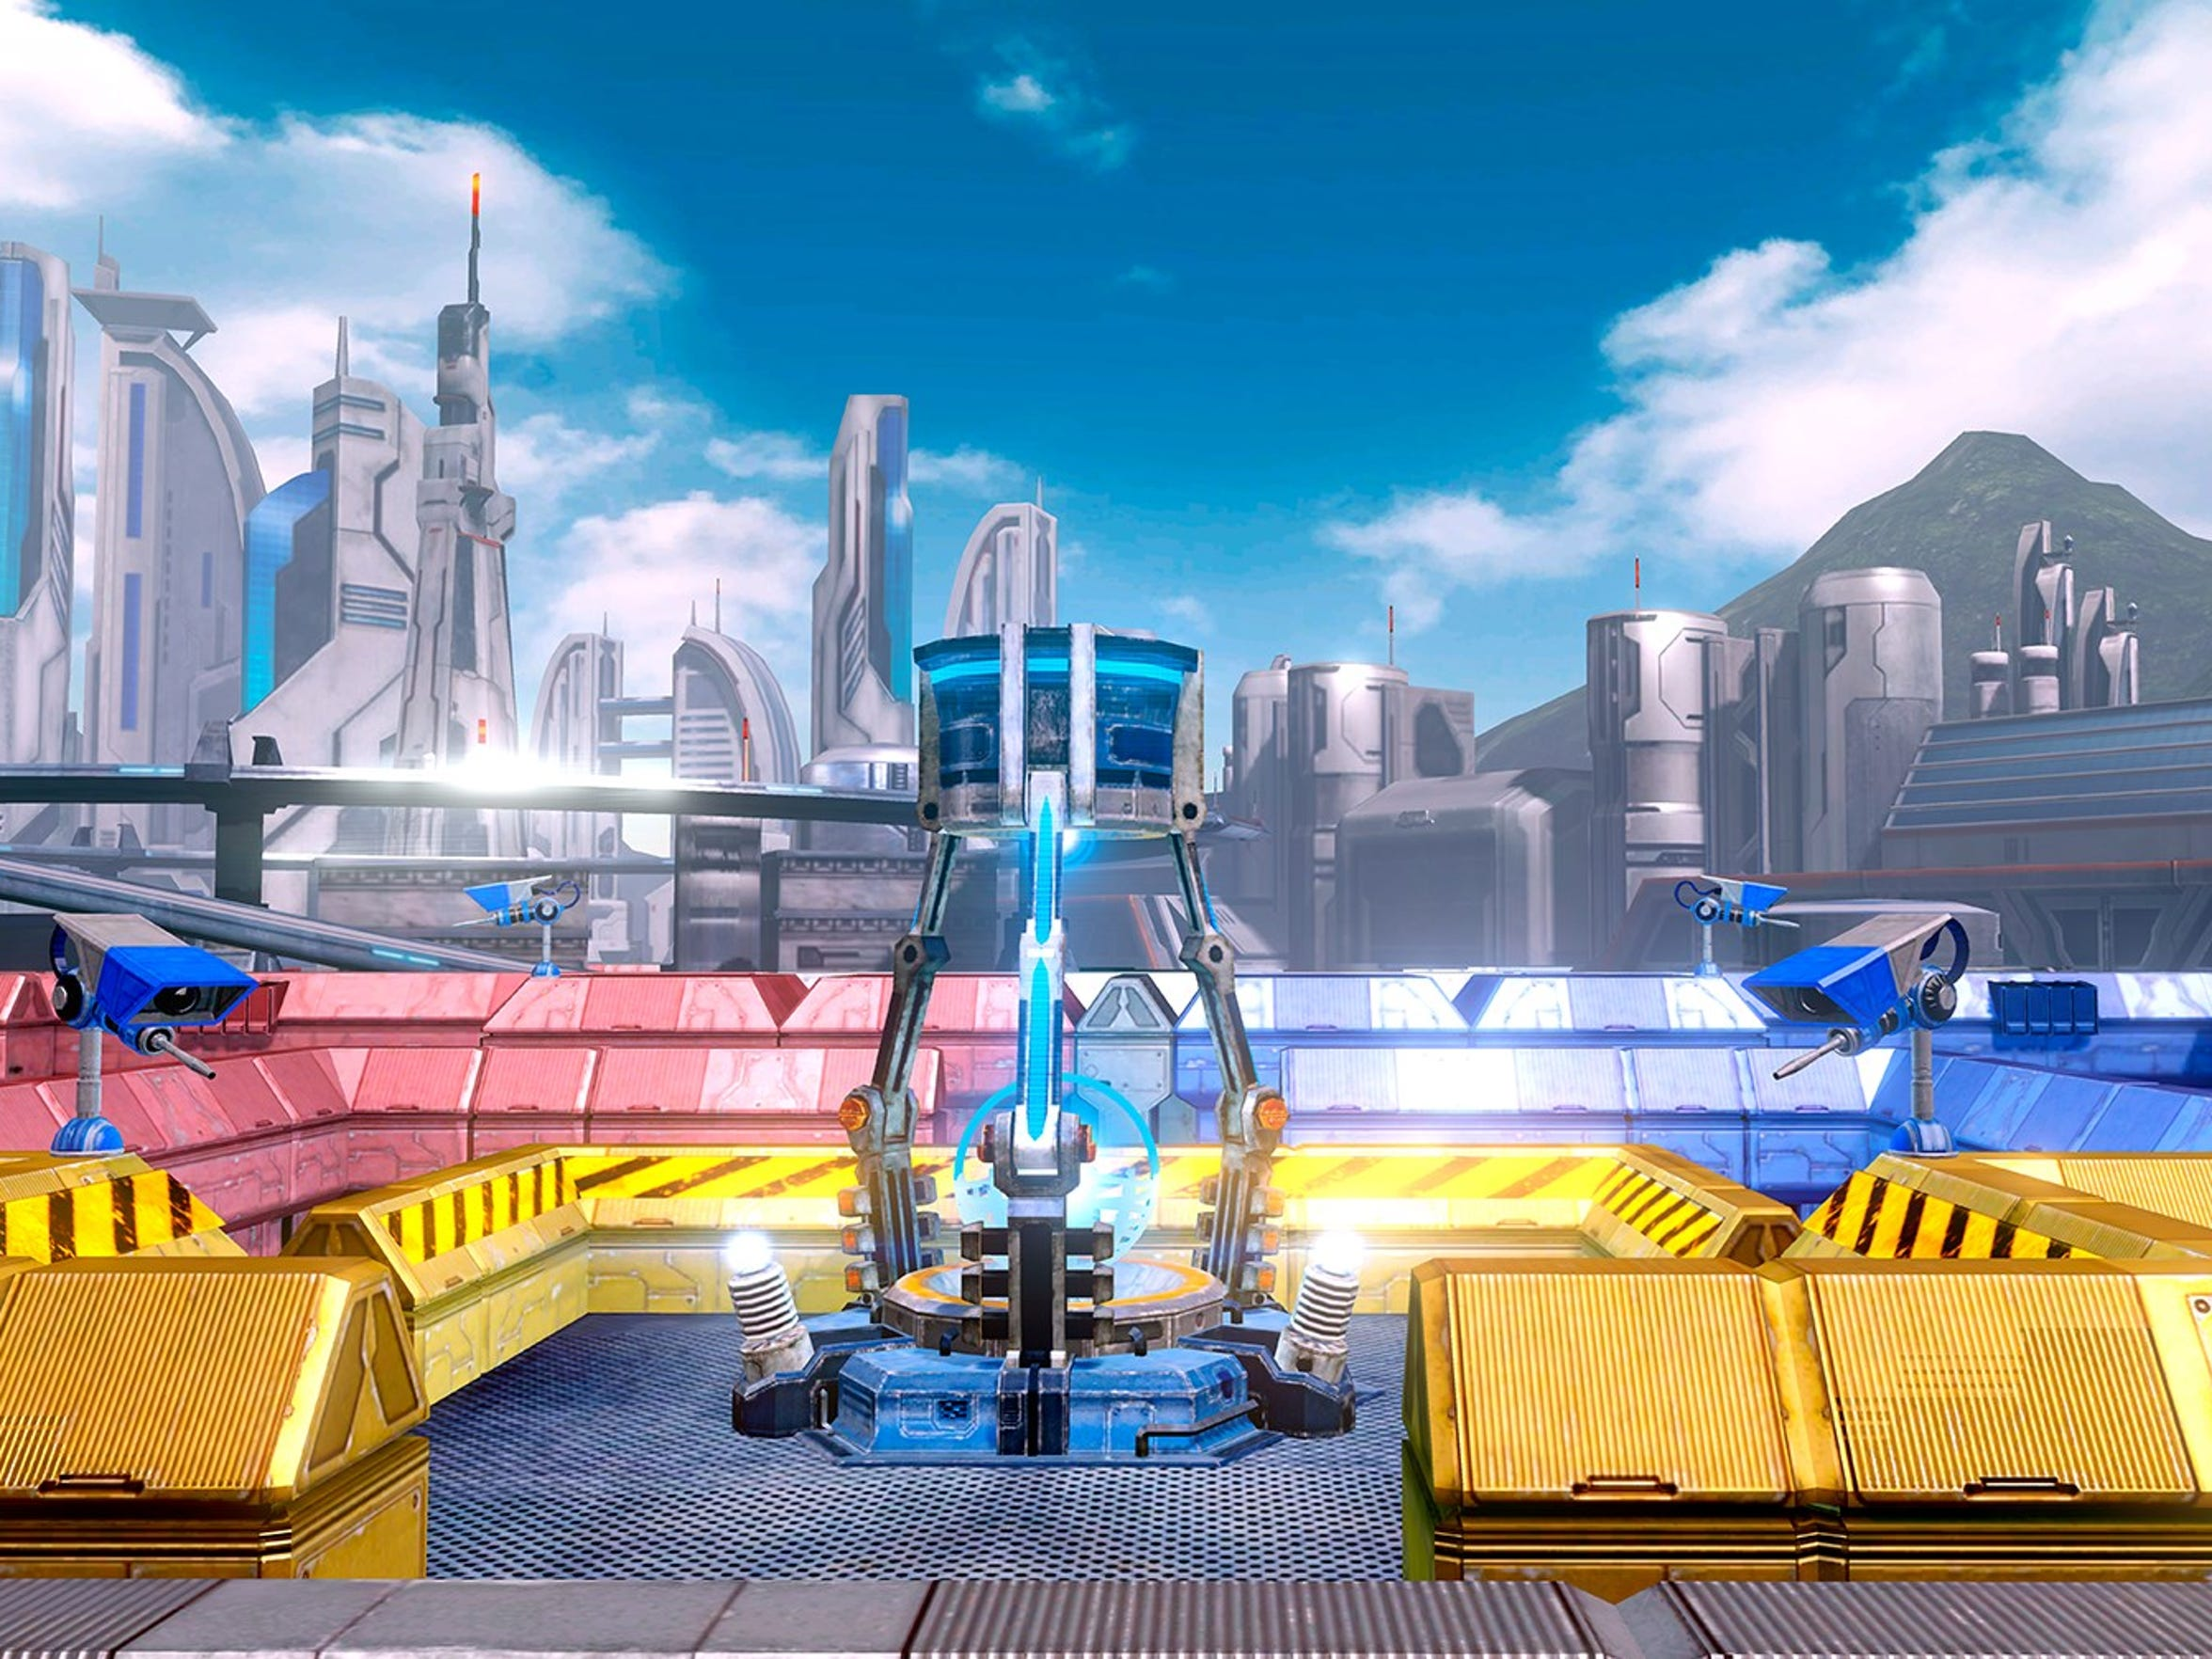 Defend your base from invading robots in Star Fox Guard for the Wii U.